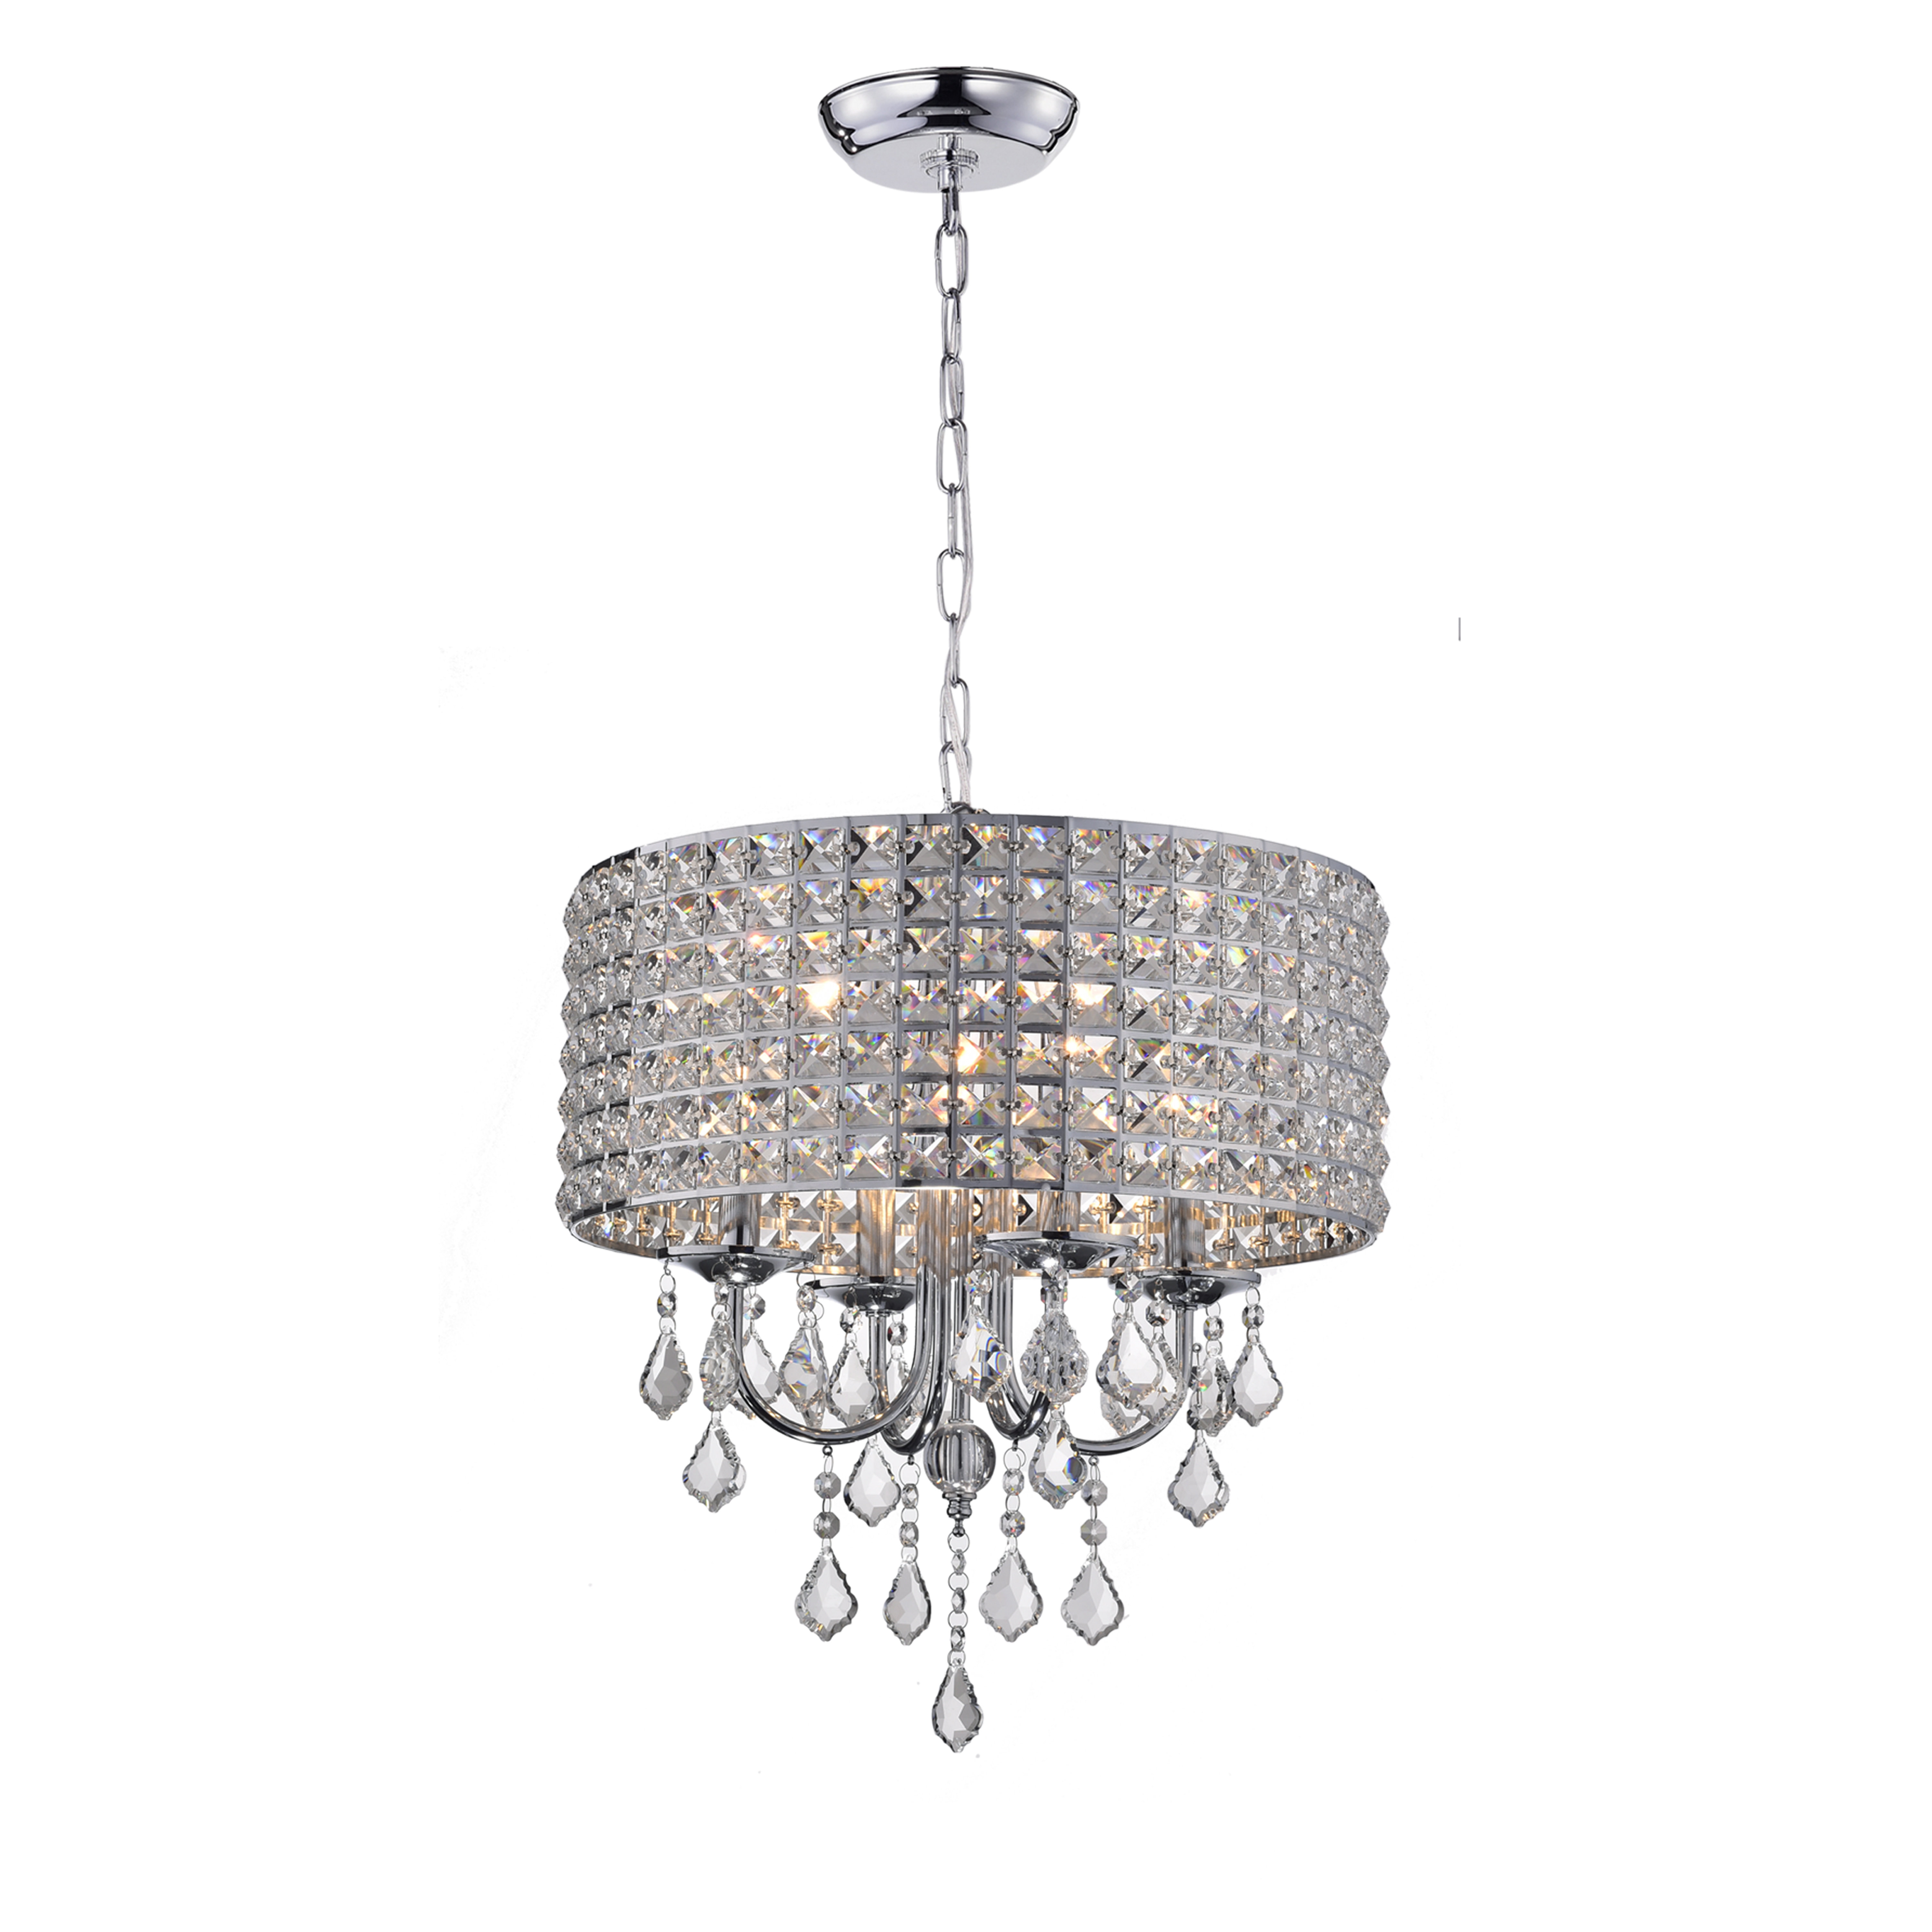 Albano 4 Light Crystal Chandelier In Albano 4 Light Crystal Chandeliers (Image 5 of 30)